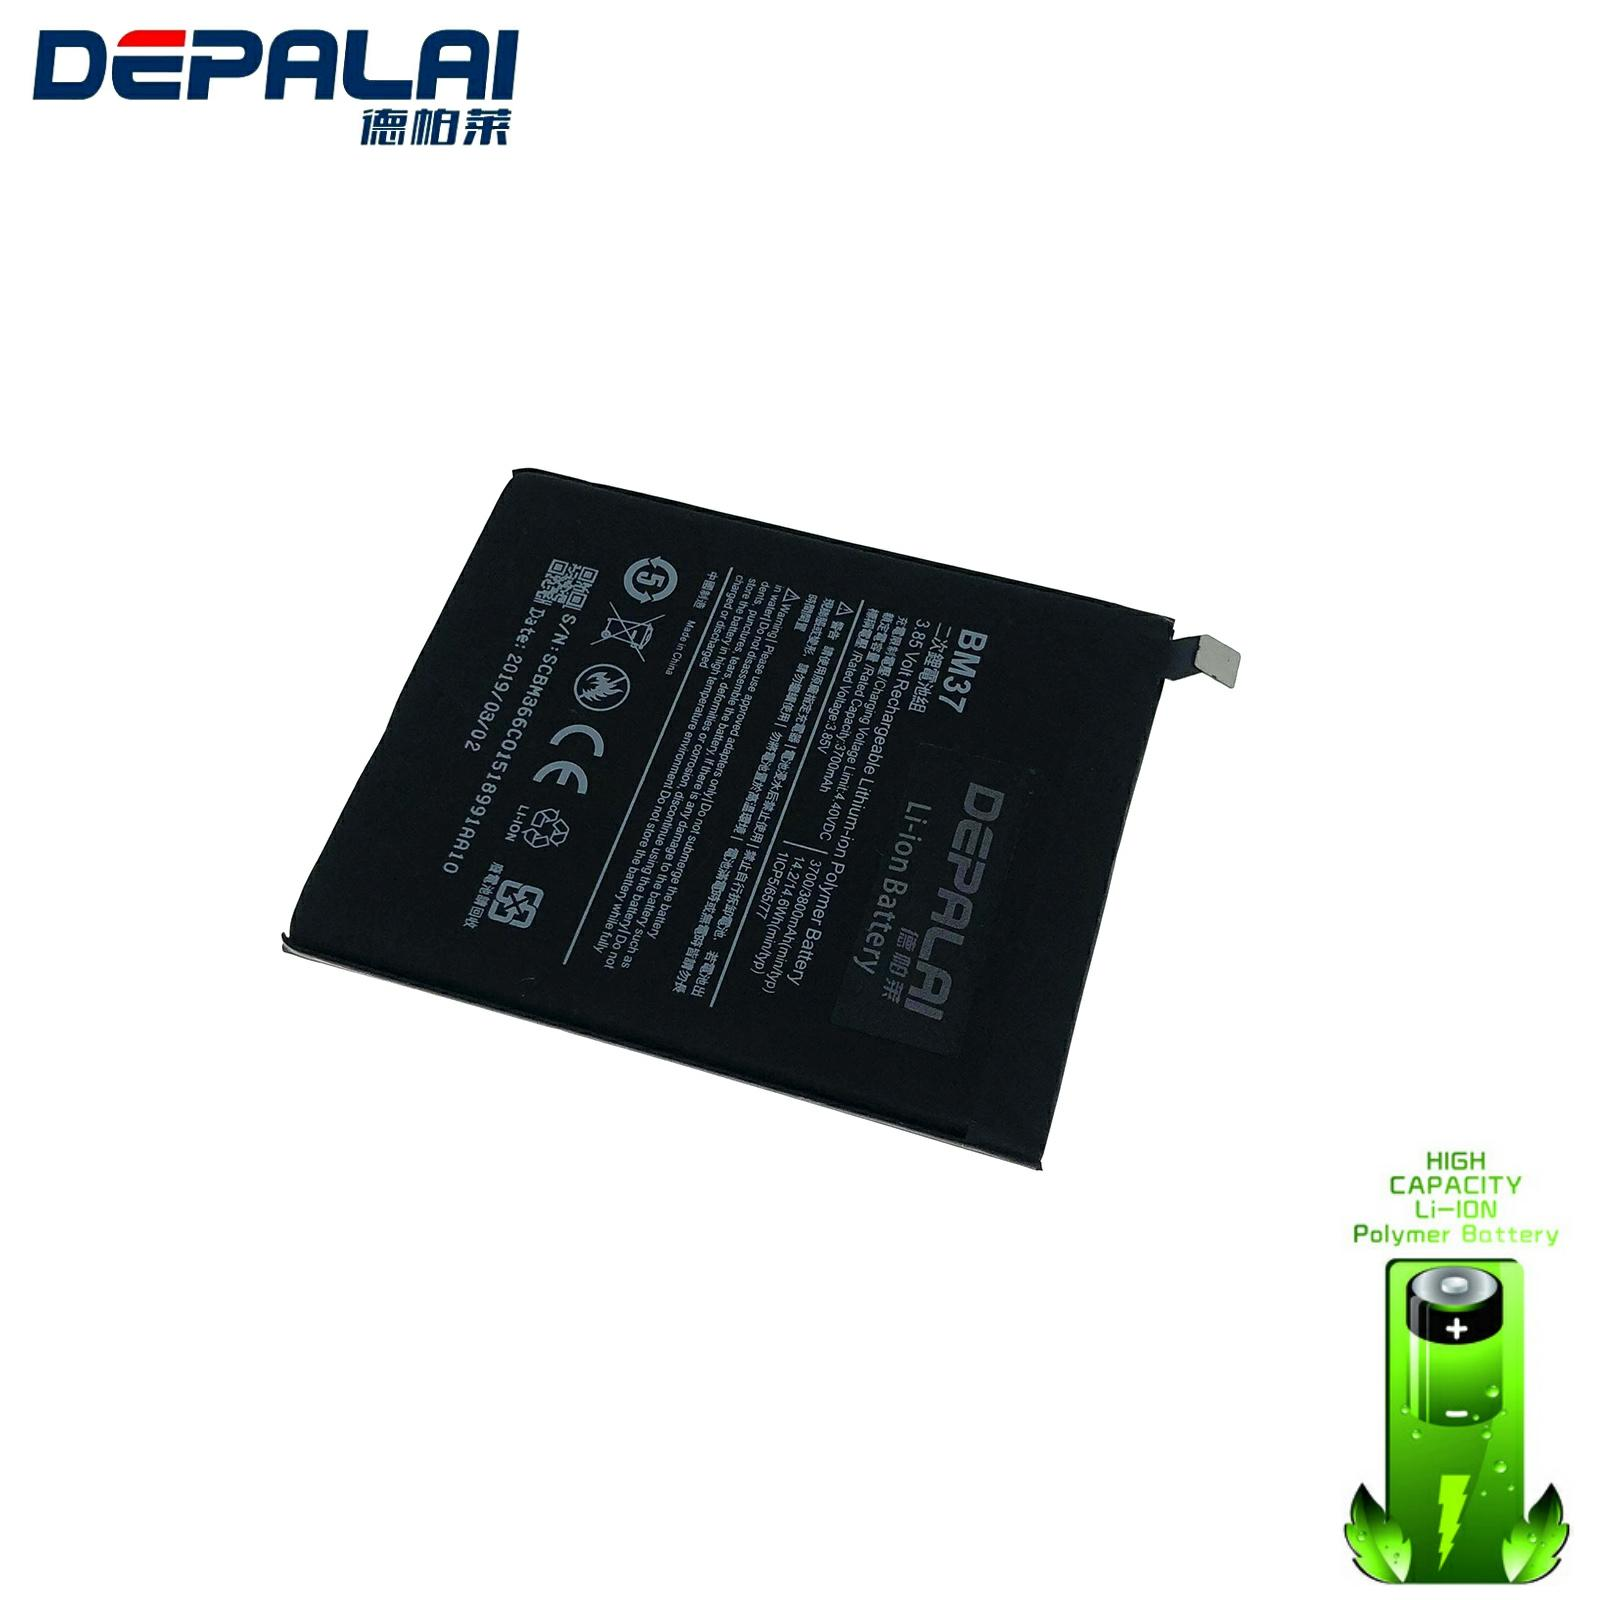 BM37 Mobile Phone <font><b>Battery</b></font> For Xiaomi <font><b>Mi</b></font> <font><b>5s</b></font> Plus Real Capacity 3800mAh Replacement Li-ion <font><b>Battery</b></font> image